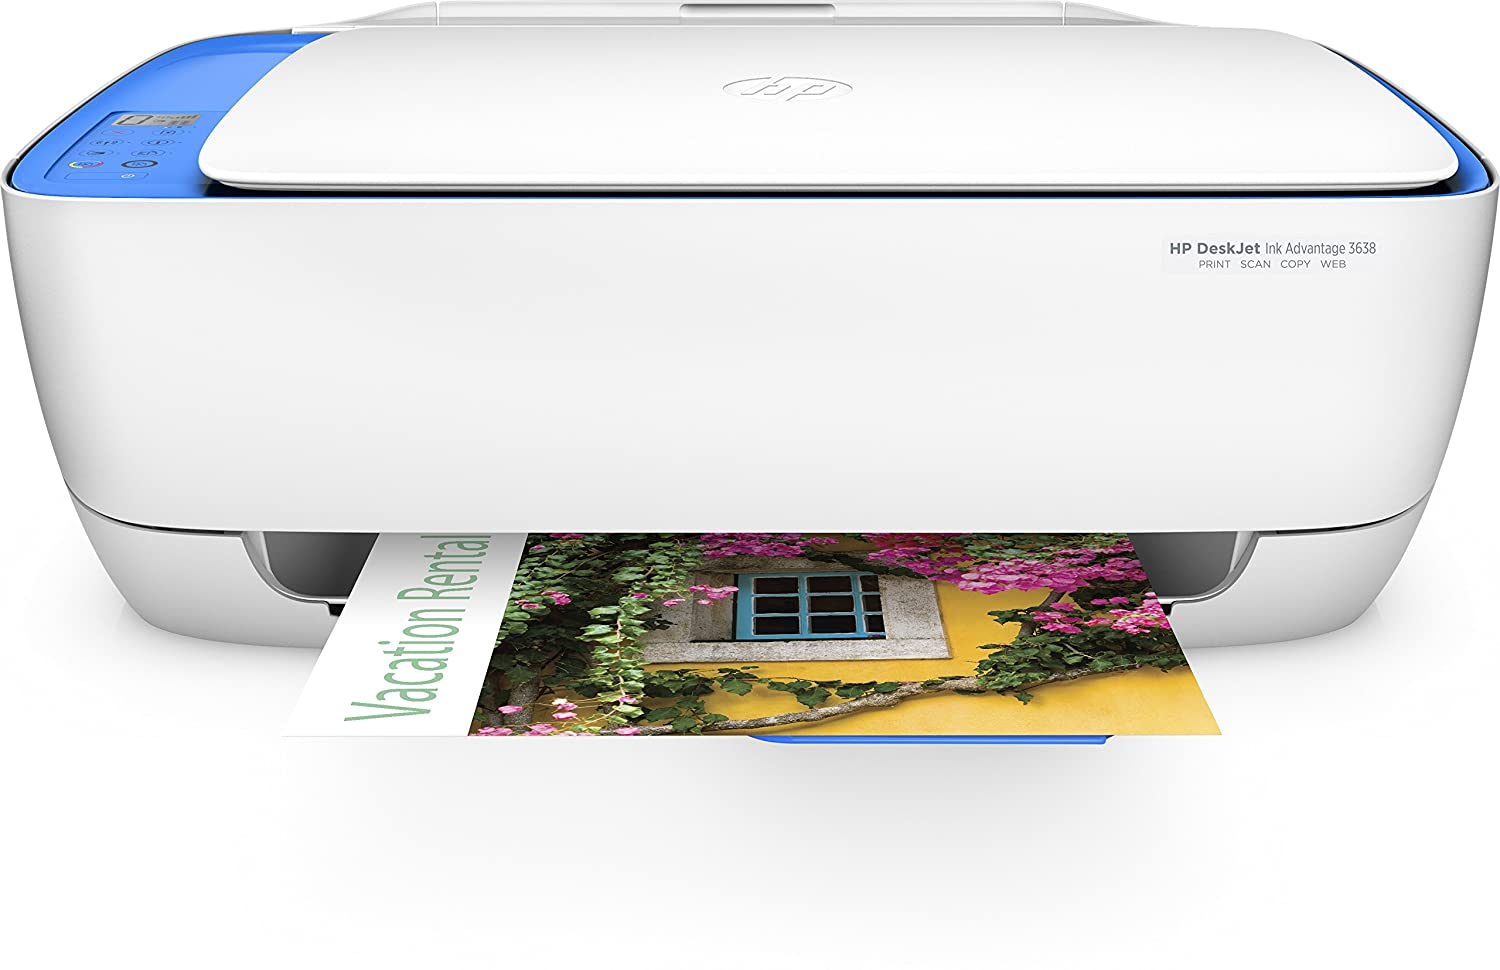 HP Deskjet 3638 - Impresora Multifunción Color: Amazon.es: Informática